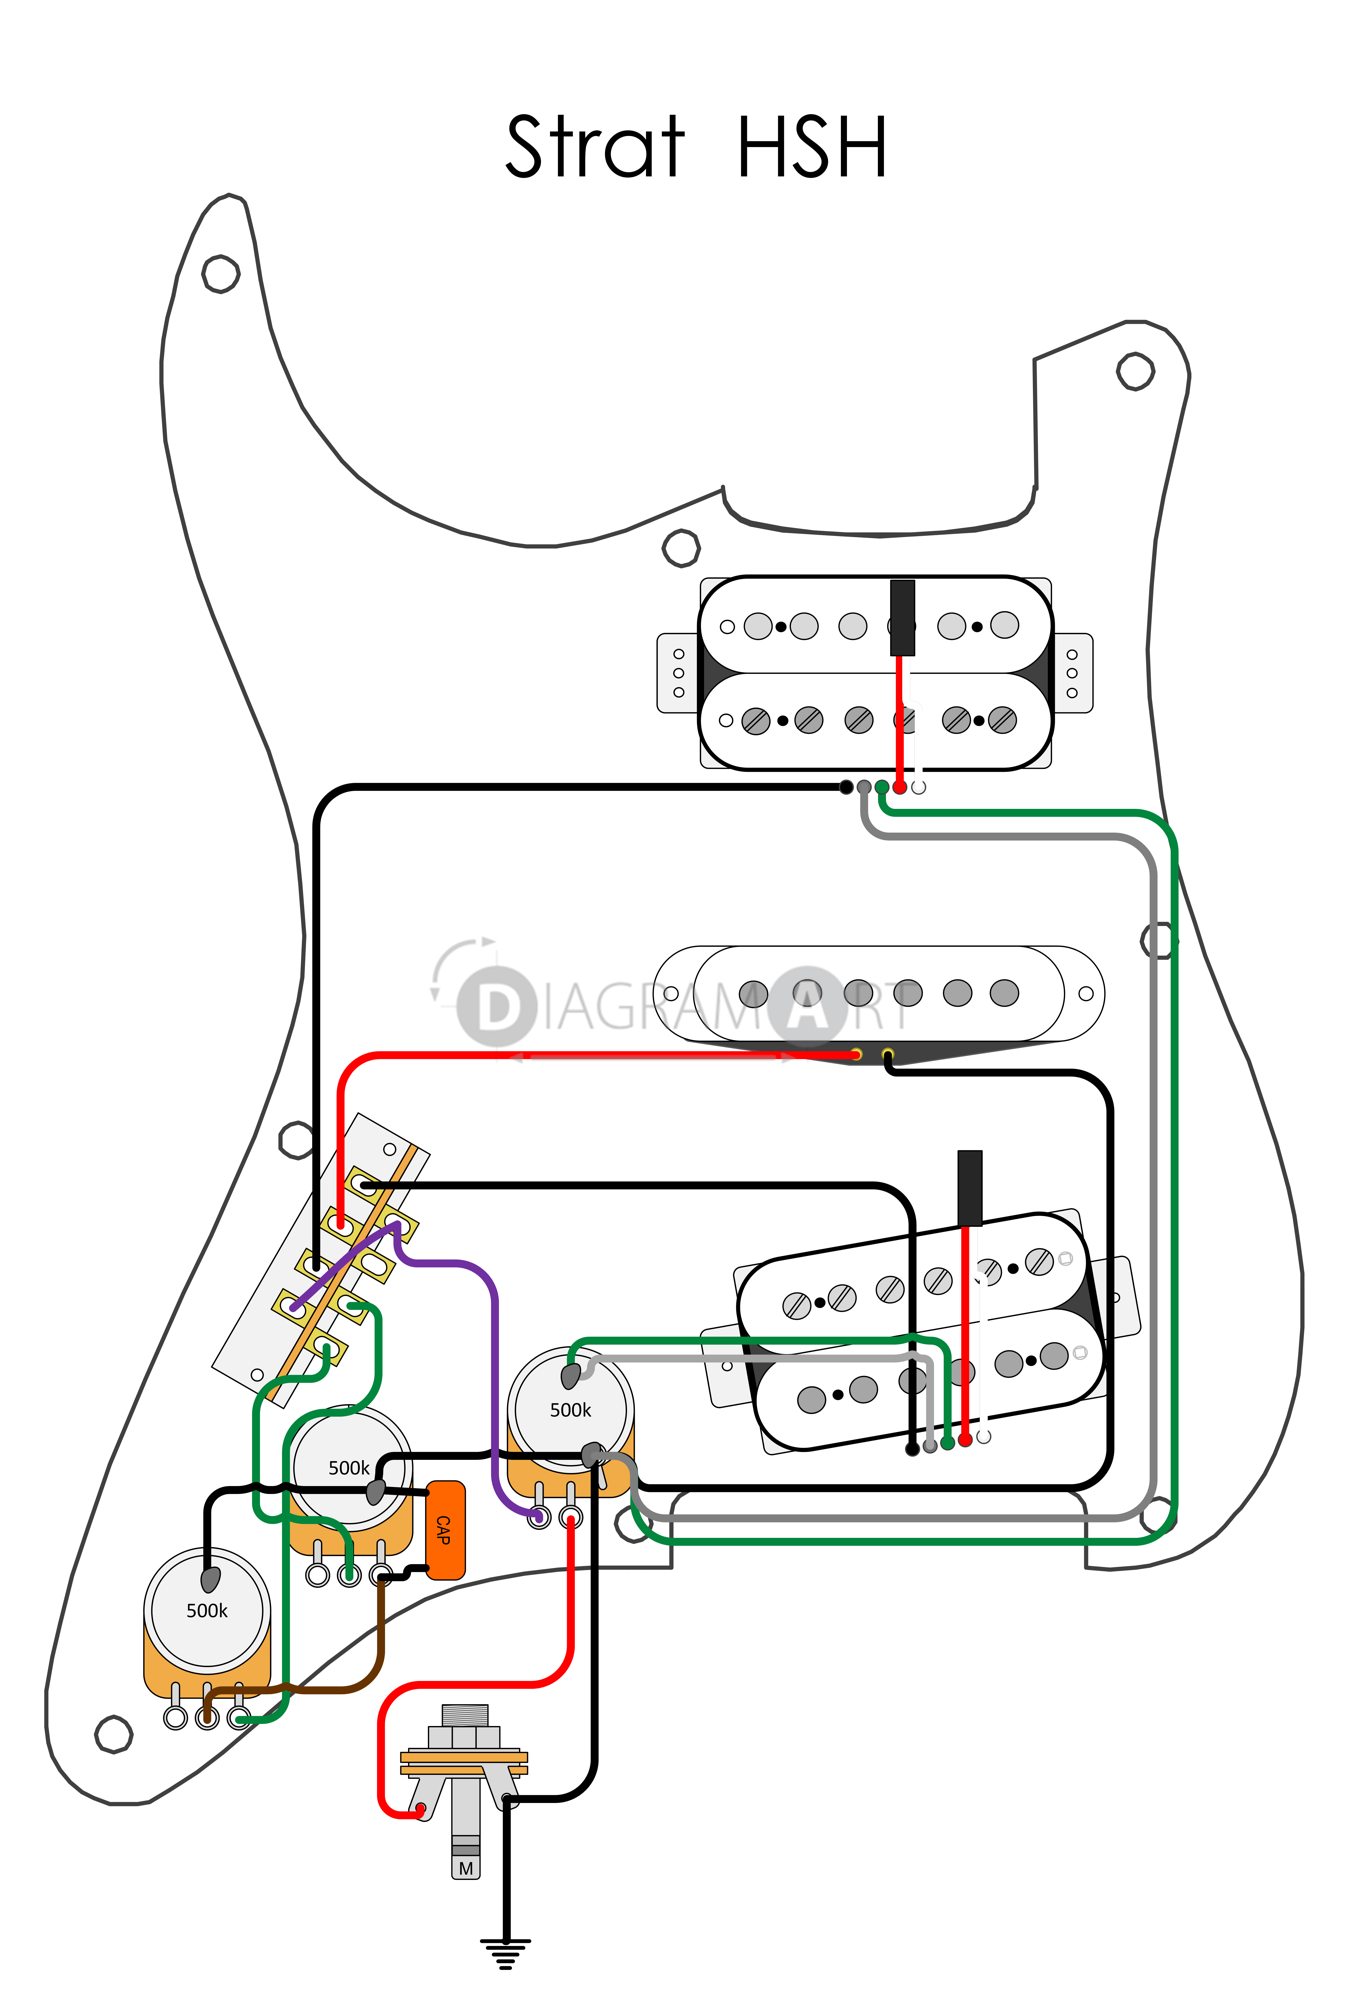 Wiring Diagram Hsh Strat Guide And Troubleshooting Of Re Options Hhh Guitar Third Level Rh 5 19 13 Jacobwinterstein Com